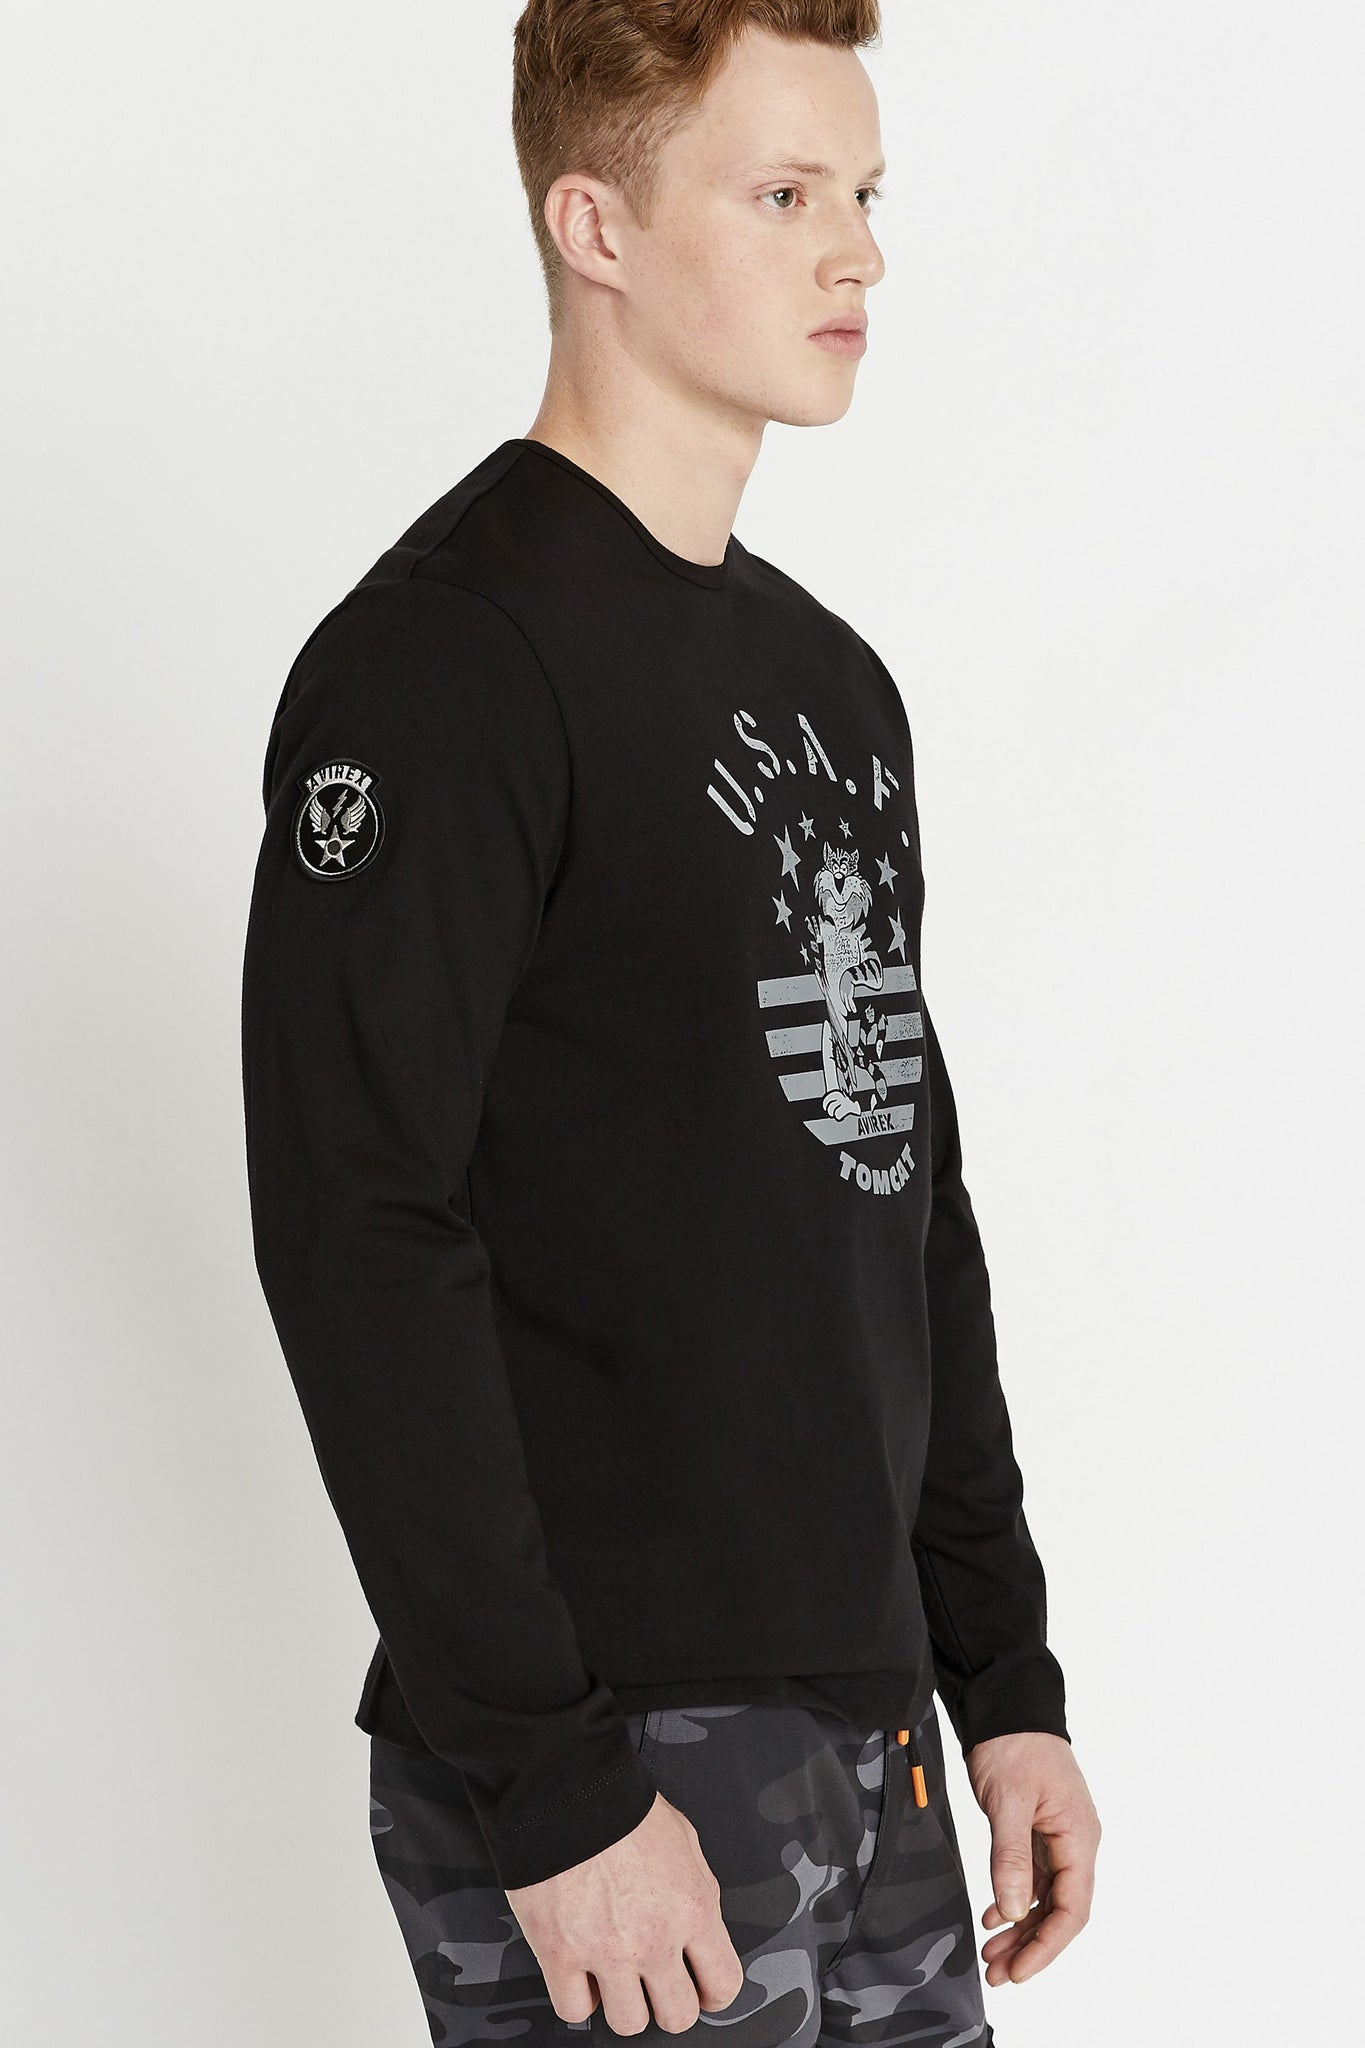 Side view of men wearing a black long sleeve crew T-shirt with front Tomcat graphics and a patch on the right sleeve